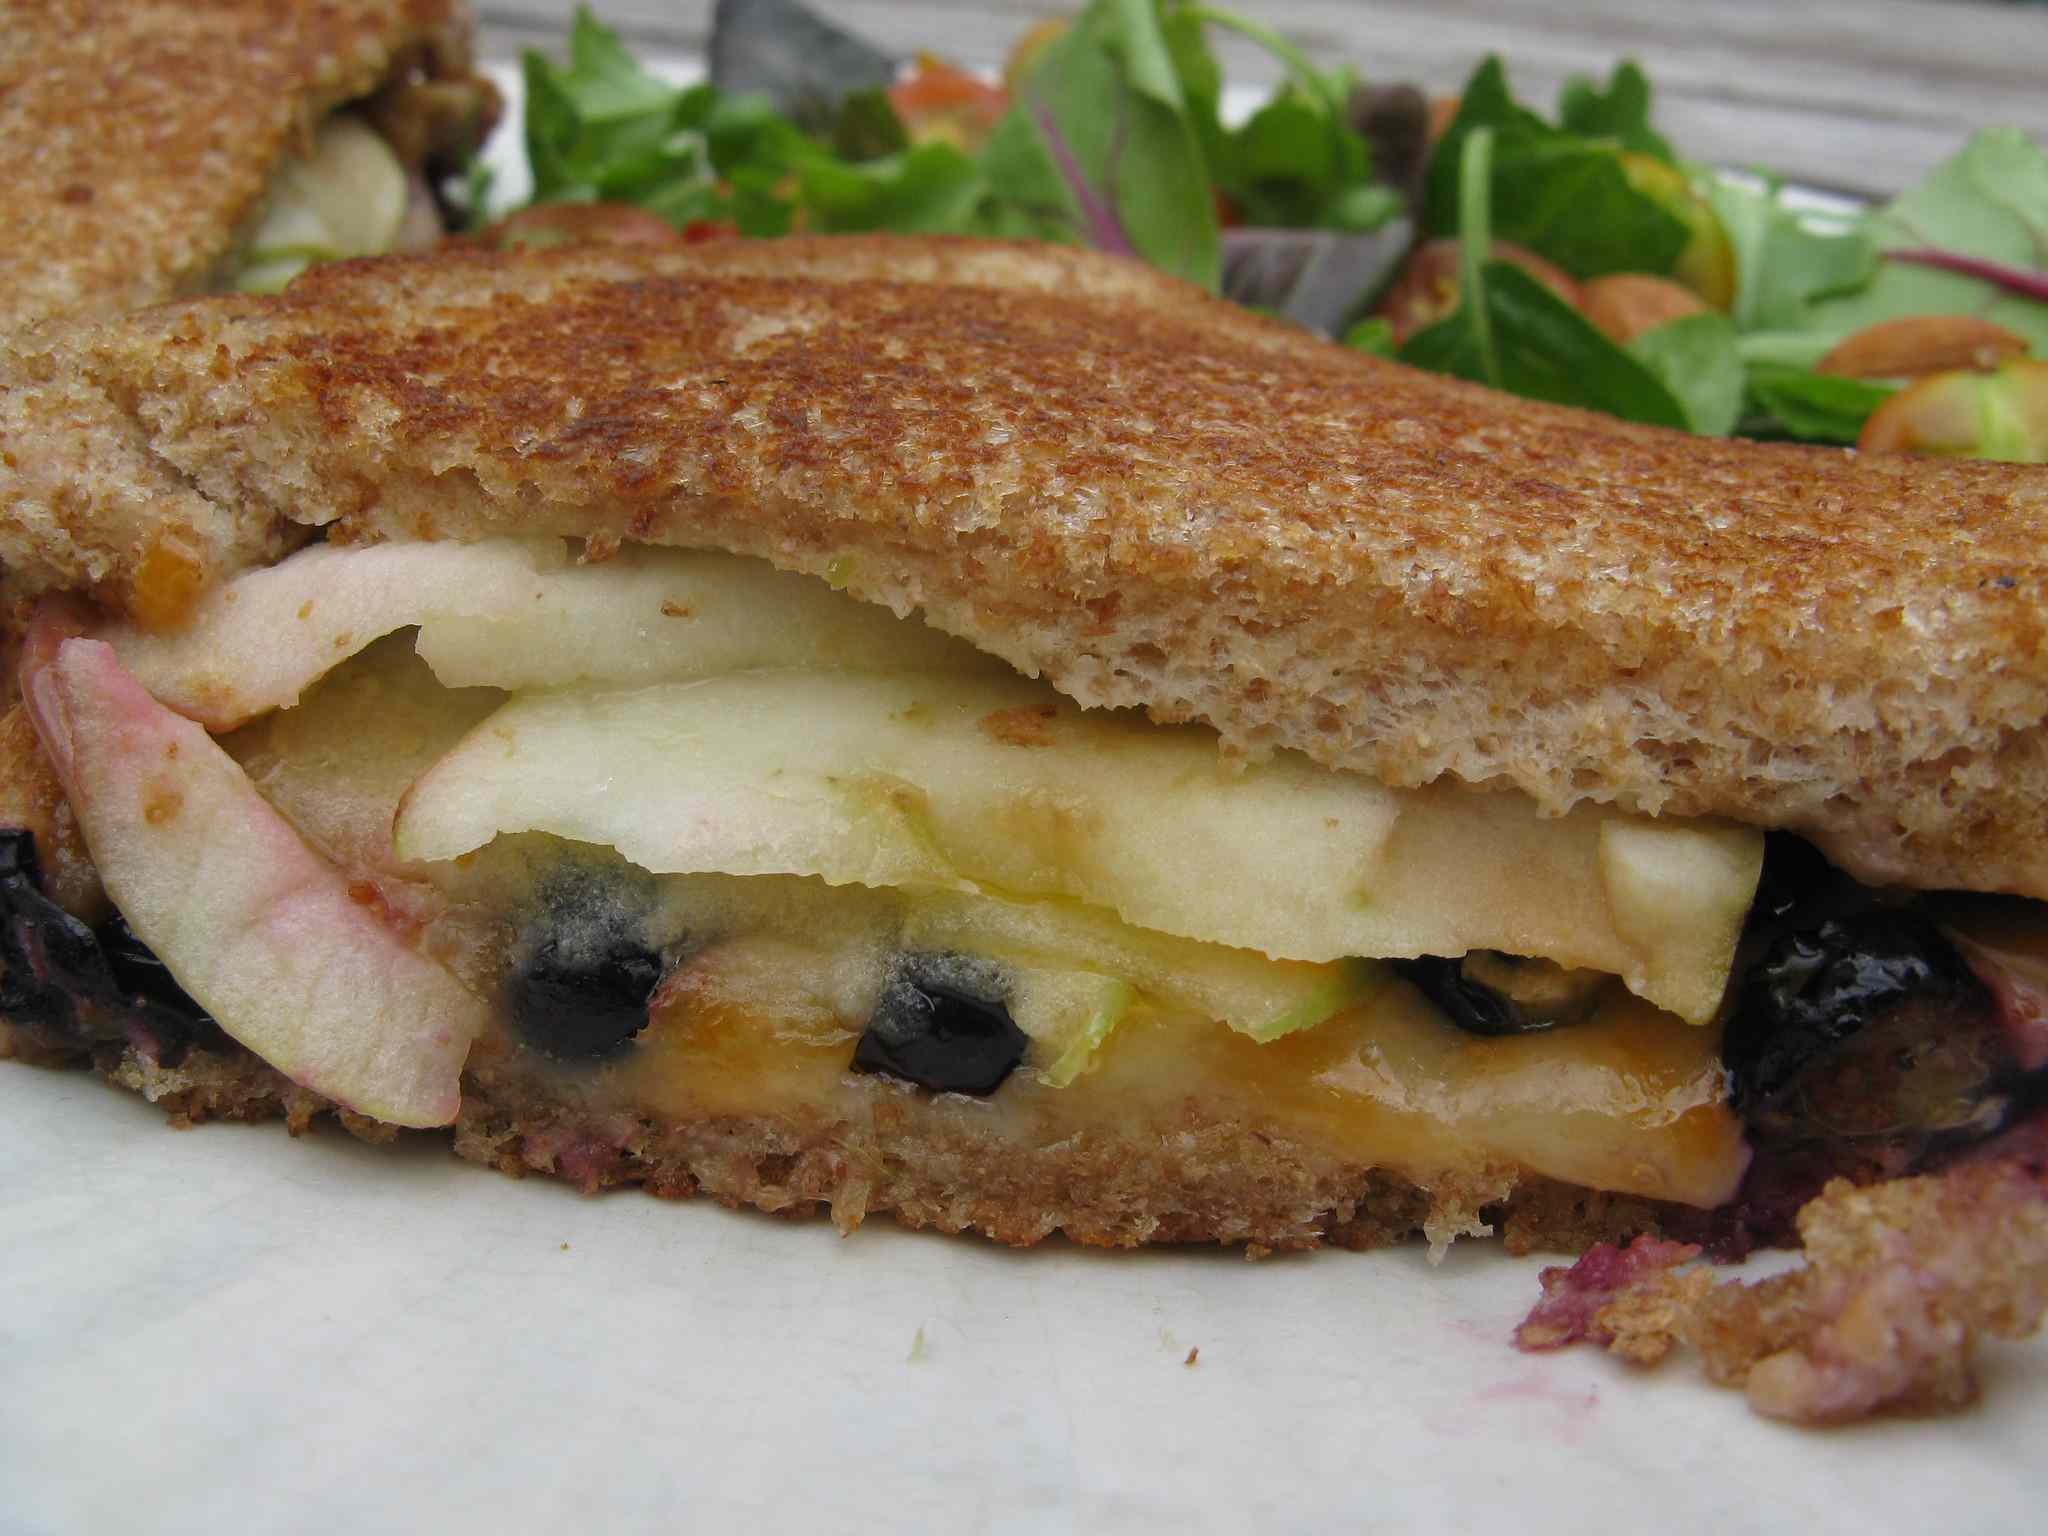 Grilled cheese sandwich with blueberries and apple